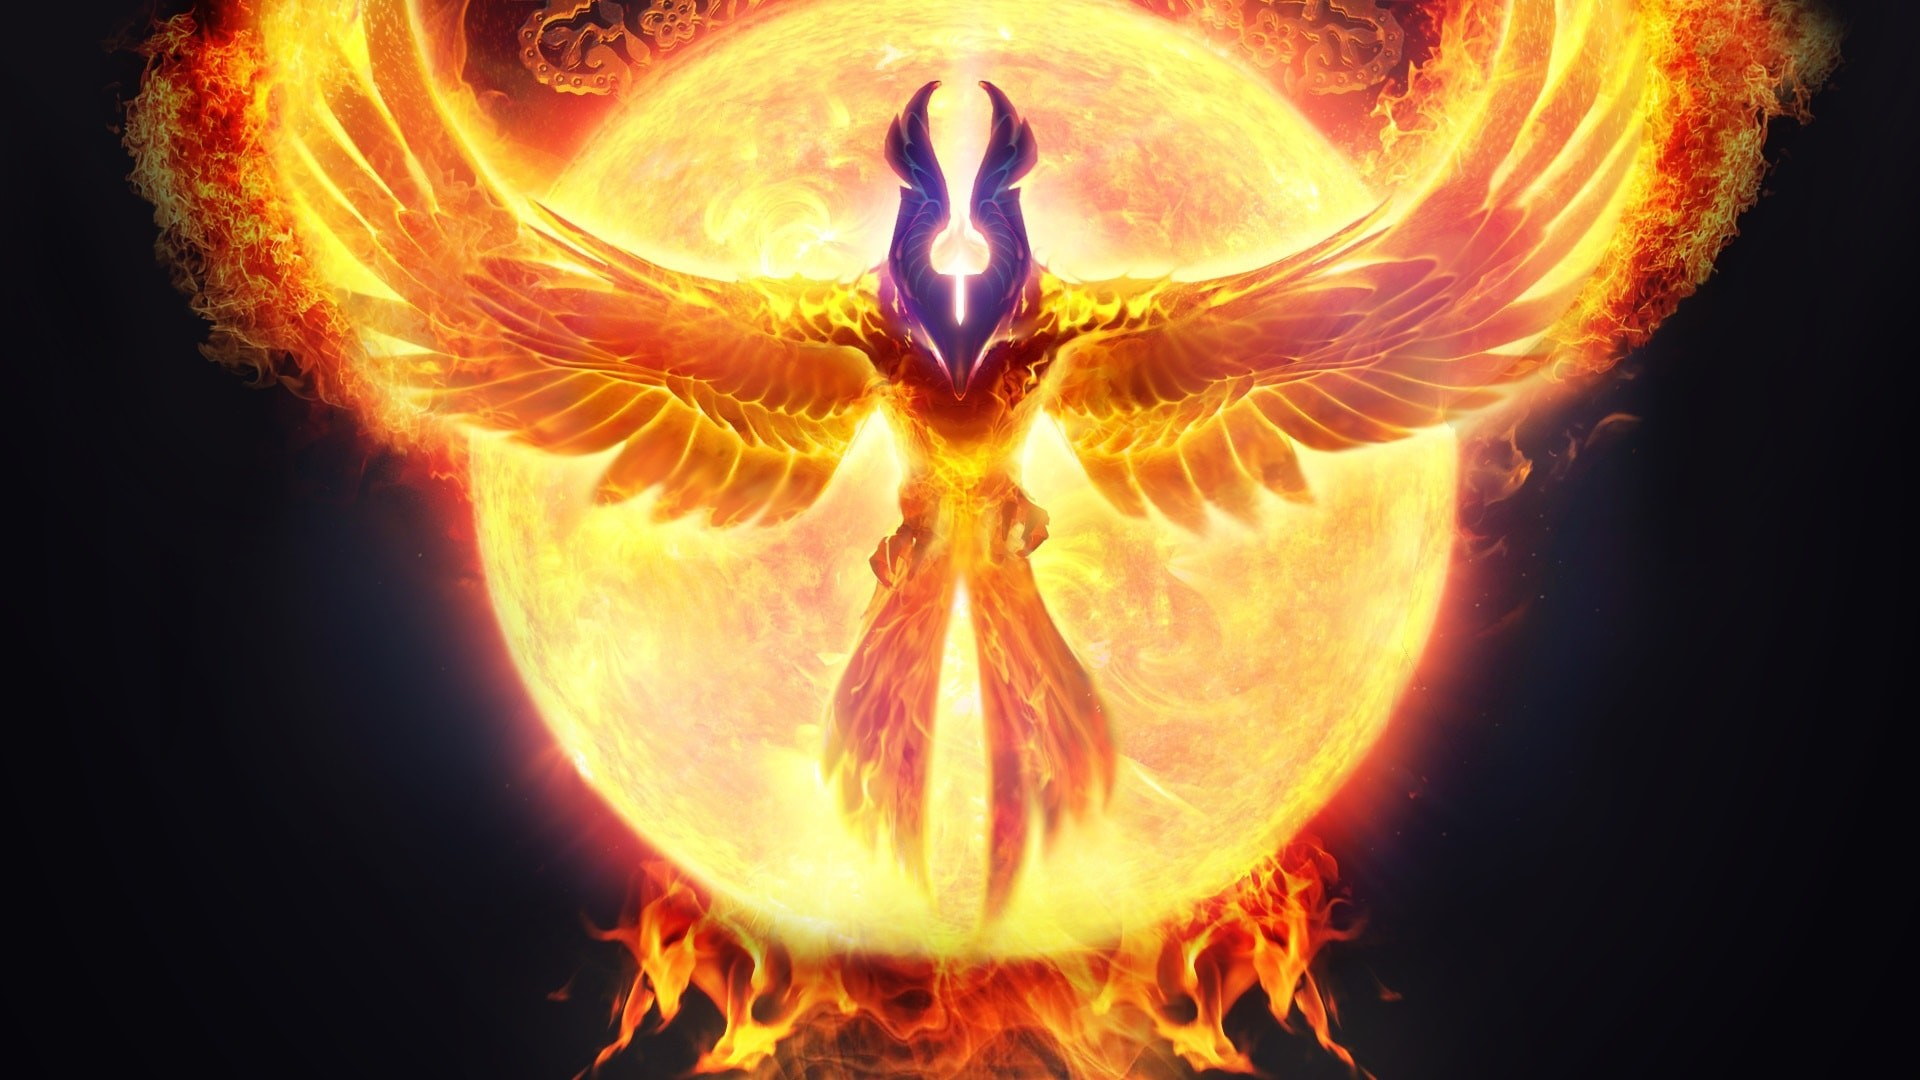 1920x1080 ... Phoenix Dota 2 Wallpapers – Dota 2 and E-Sports Geeks Dota 2 and E ...